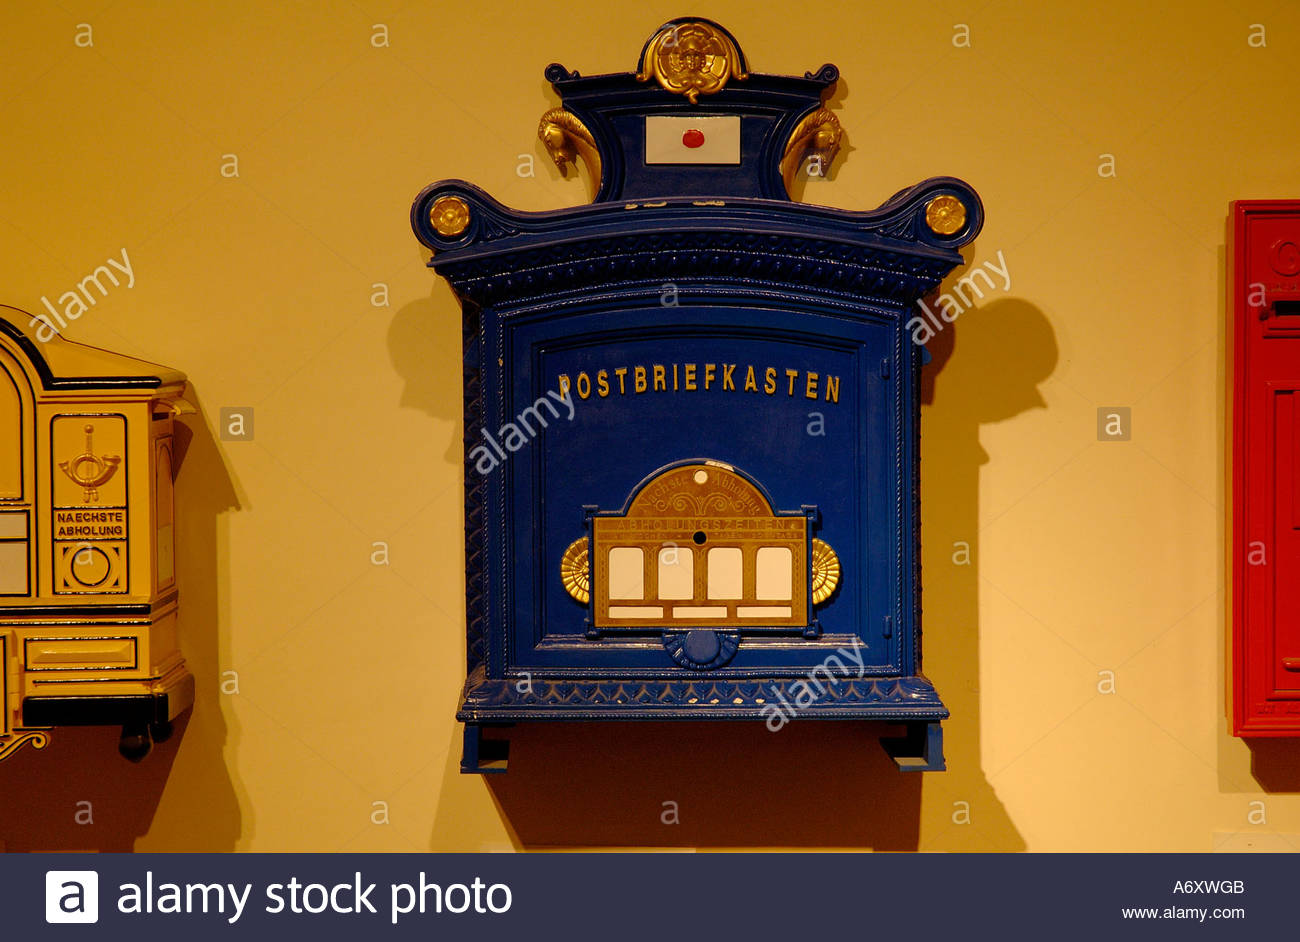 Old style post boxes on display at the Eretz Israel museun in Tel Aviv Israel - Stock Image